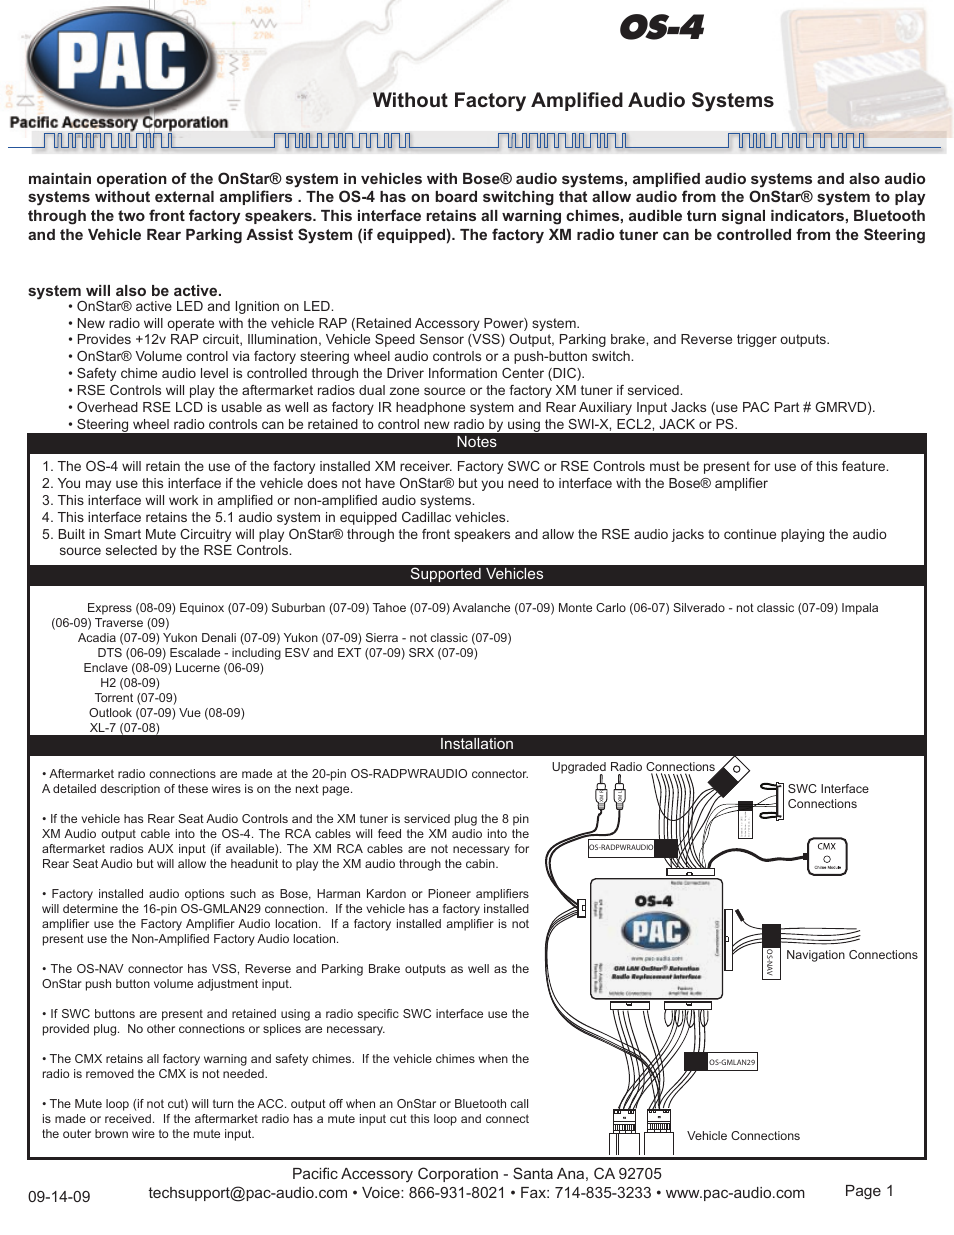 pac os 4 page1 pac os 4 user manual 4 pages pac os-1 wiring diagram at nearapp.co